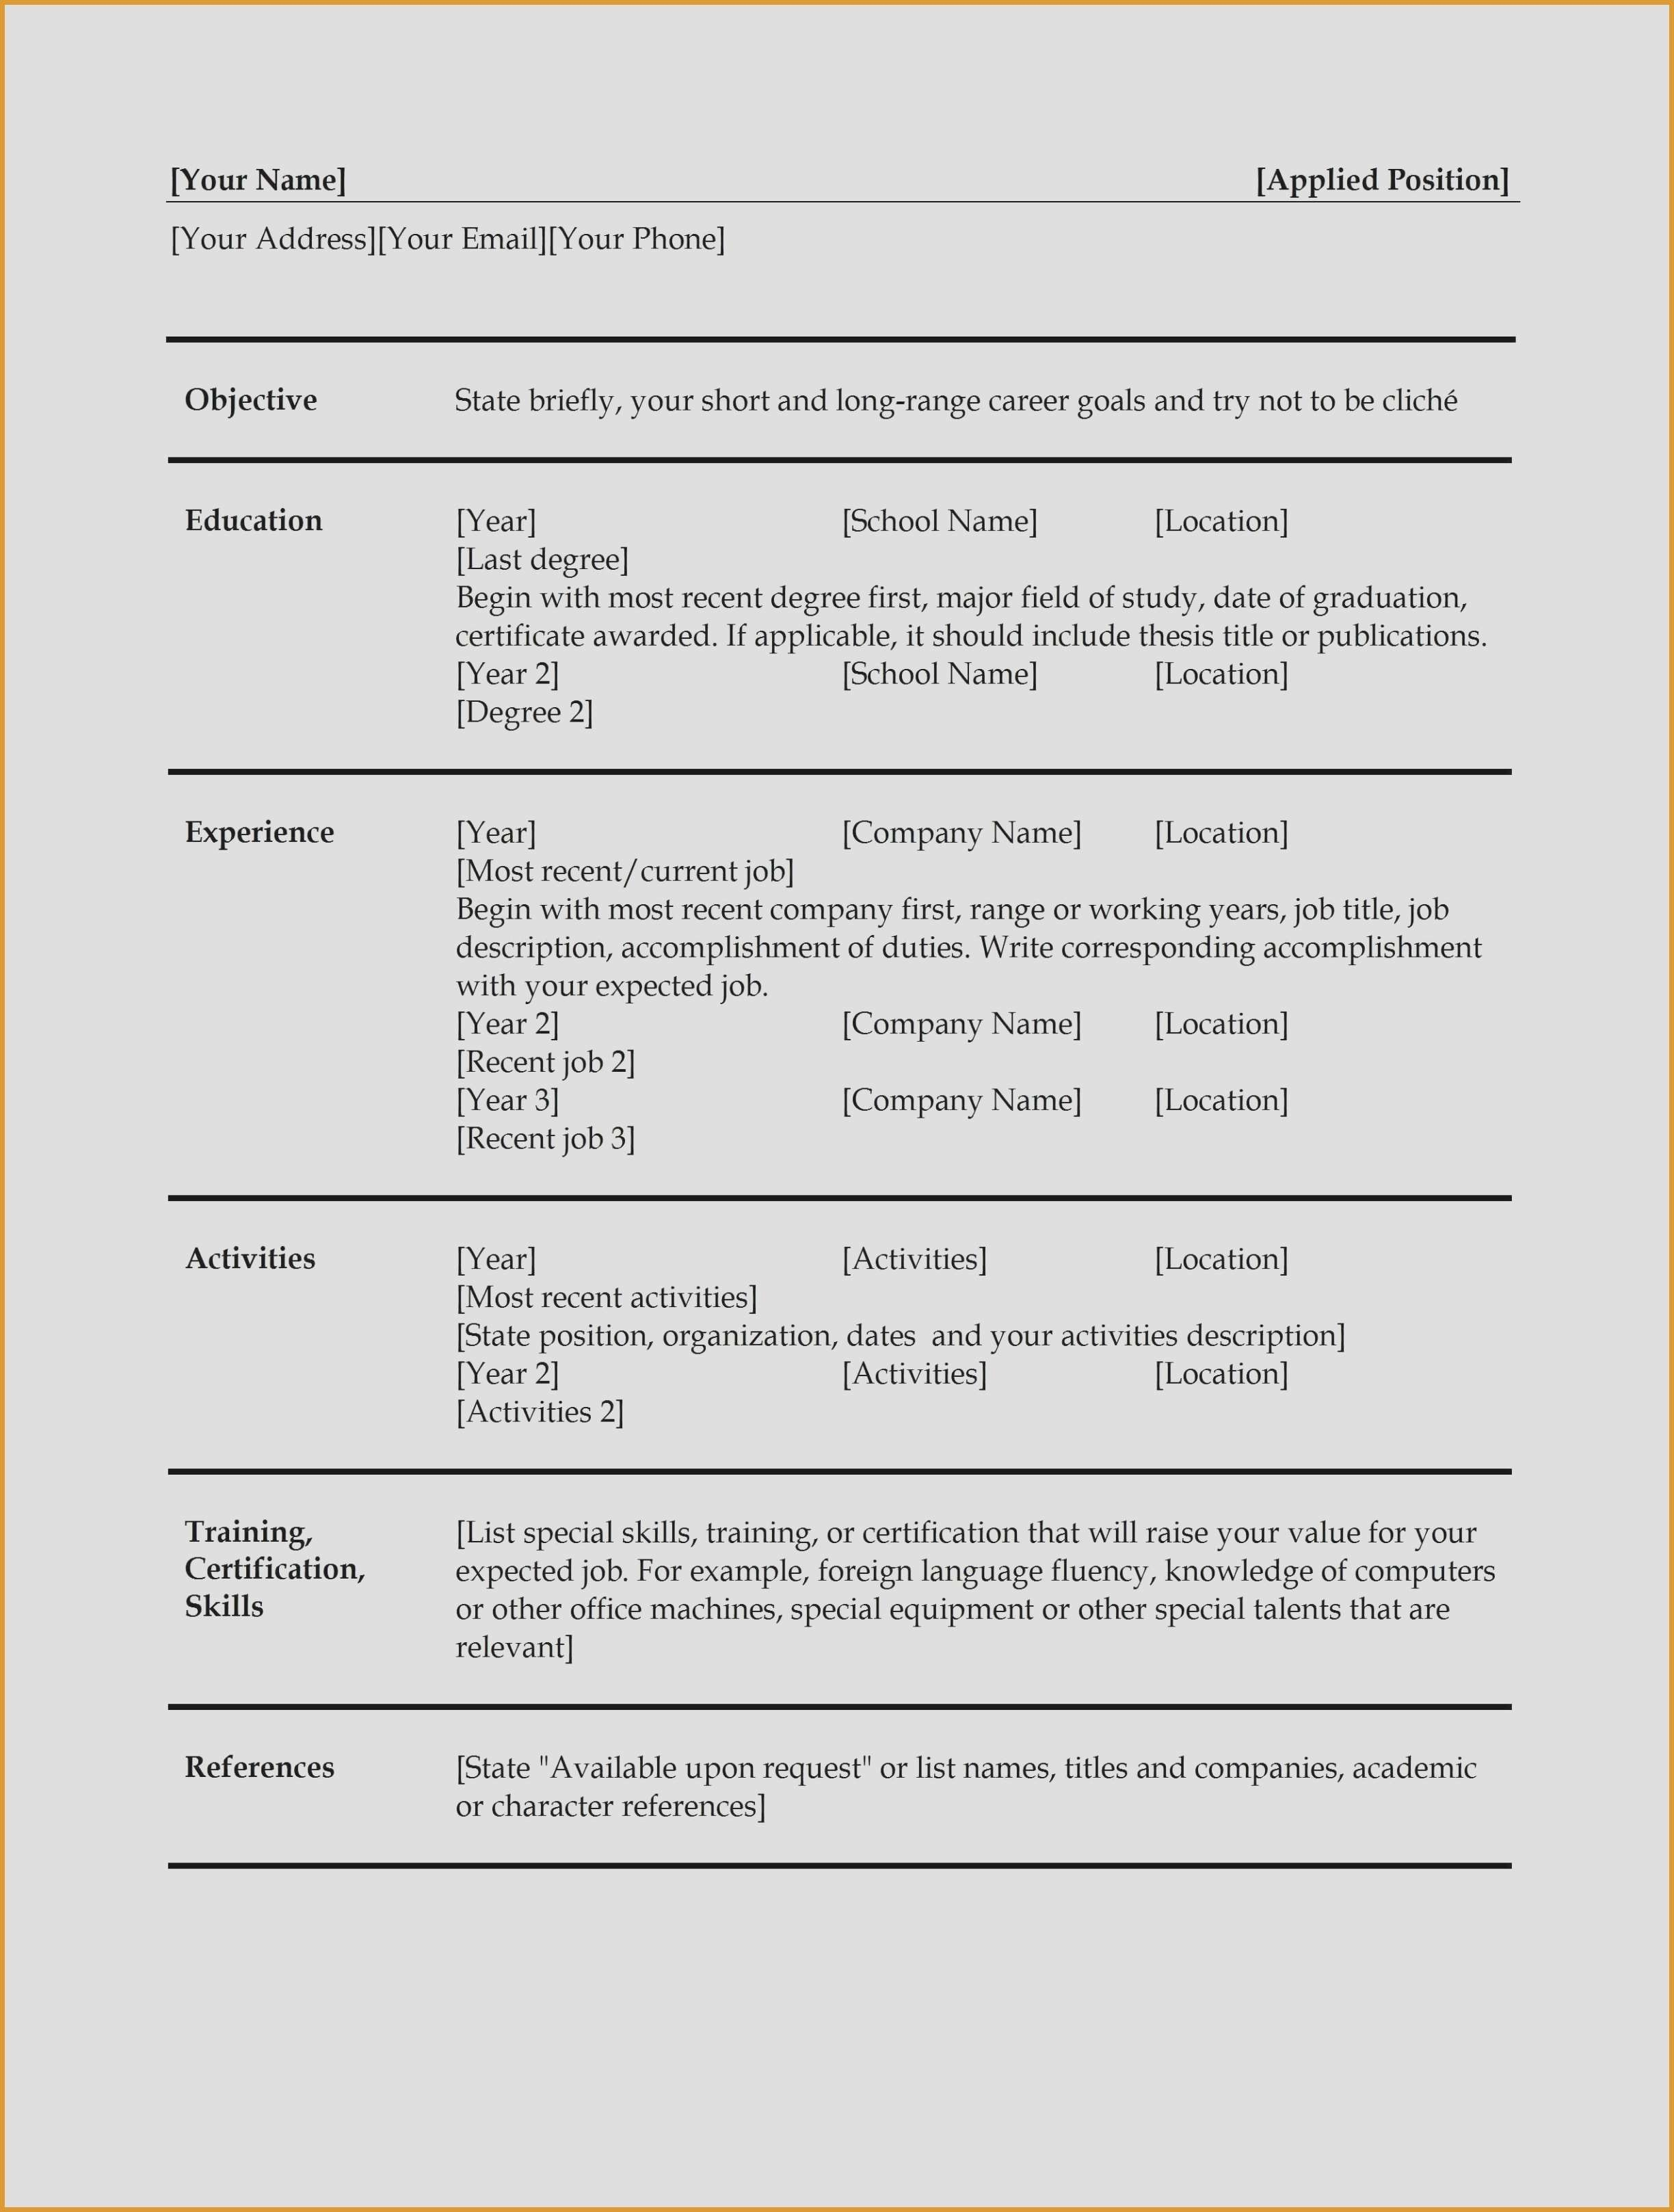 Resume Names that Stand Out Examples - Resume Titles Examples that Stand Out